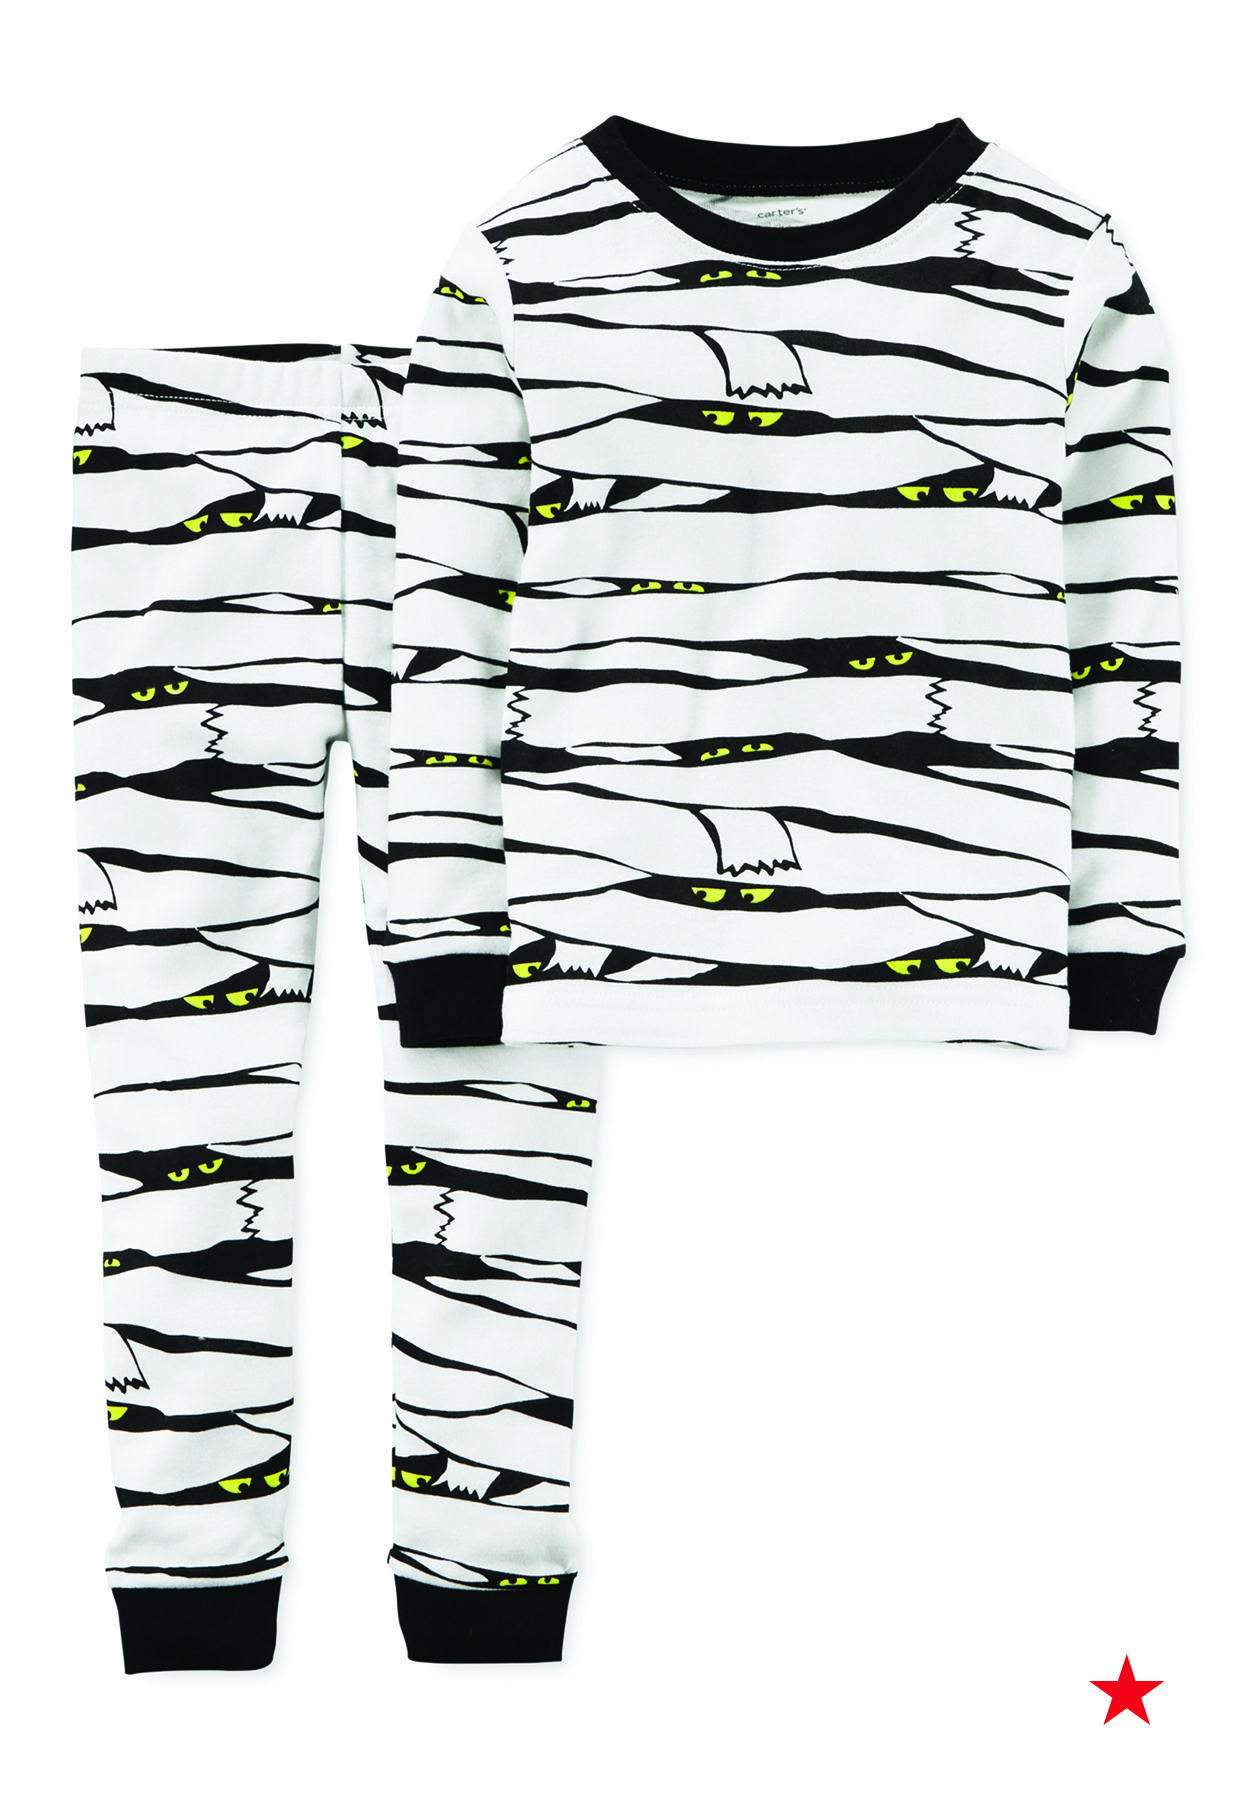 57d30f77 Hey, Mummy! We've found the perfect Halloween costume for your little guy.  Carter's mummy pajamas are a comfy and cool way to celebrate their favorite  ...